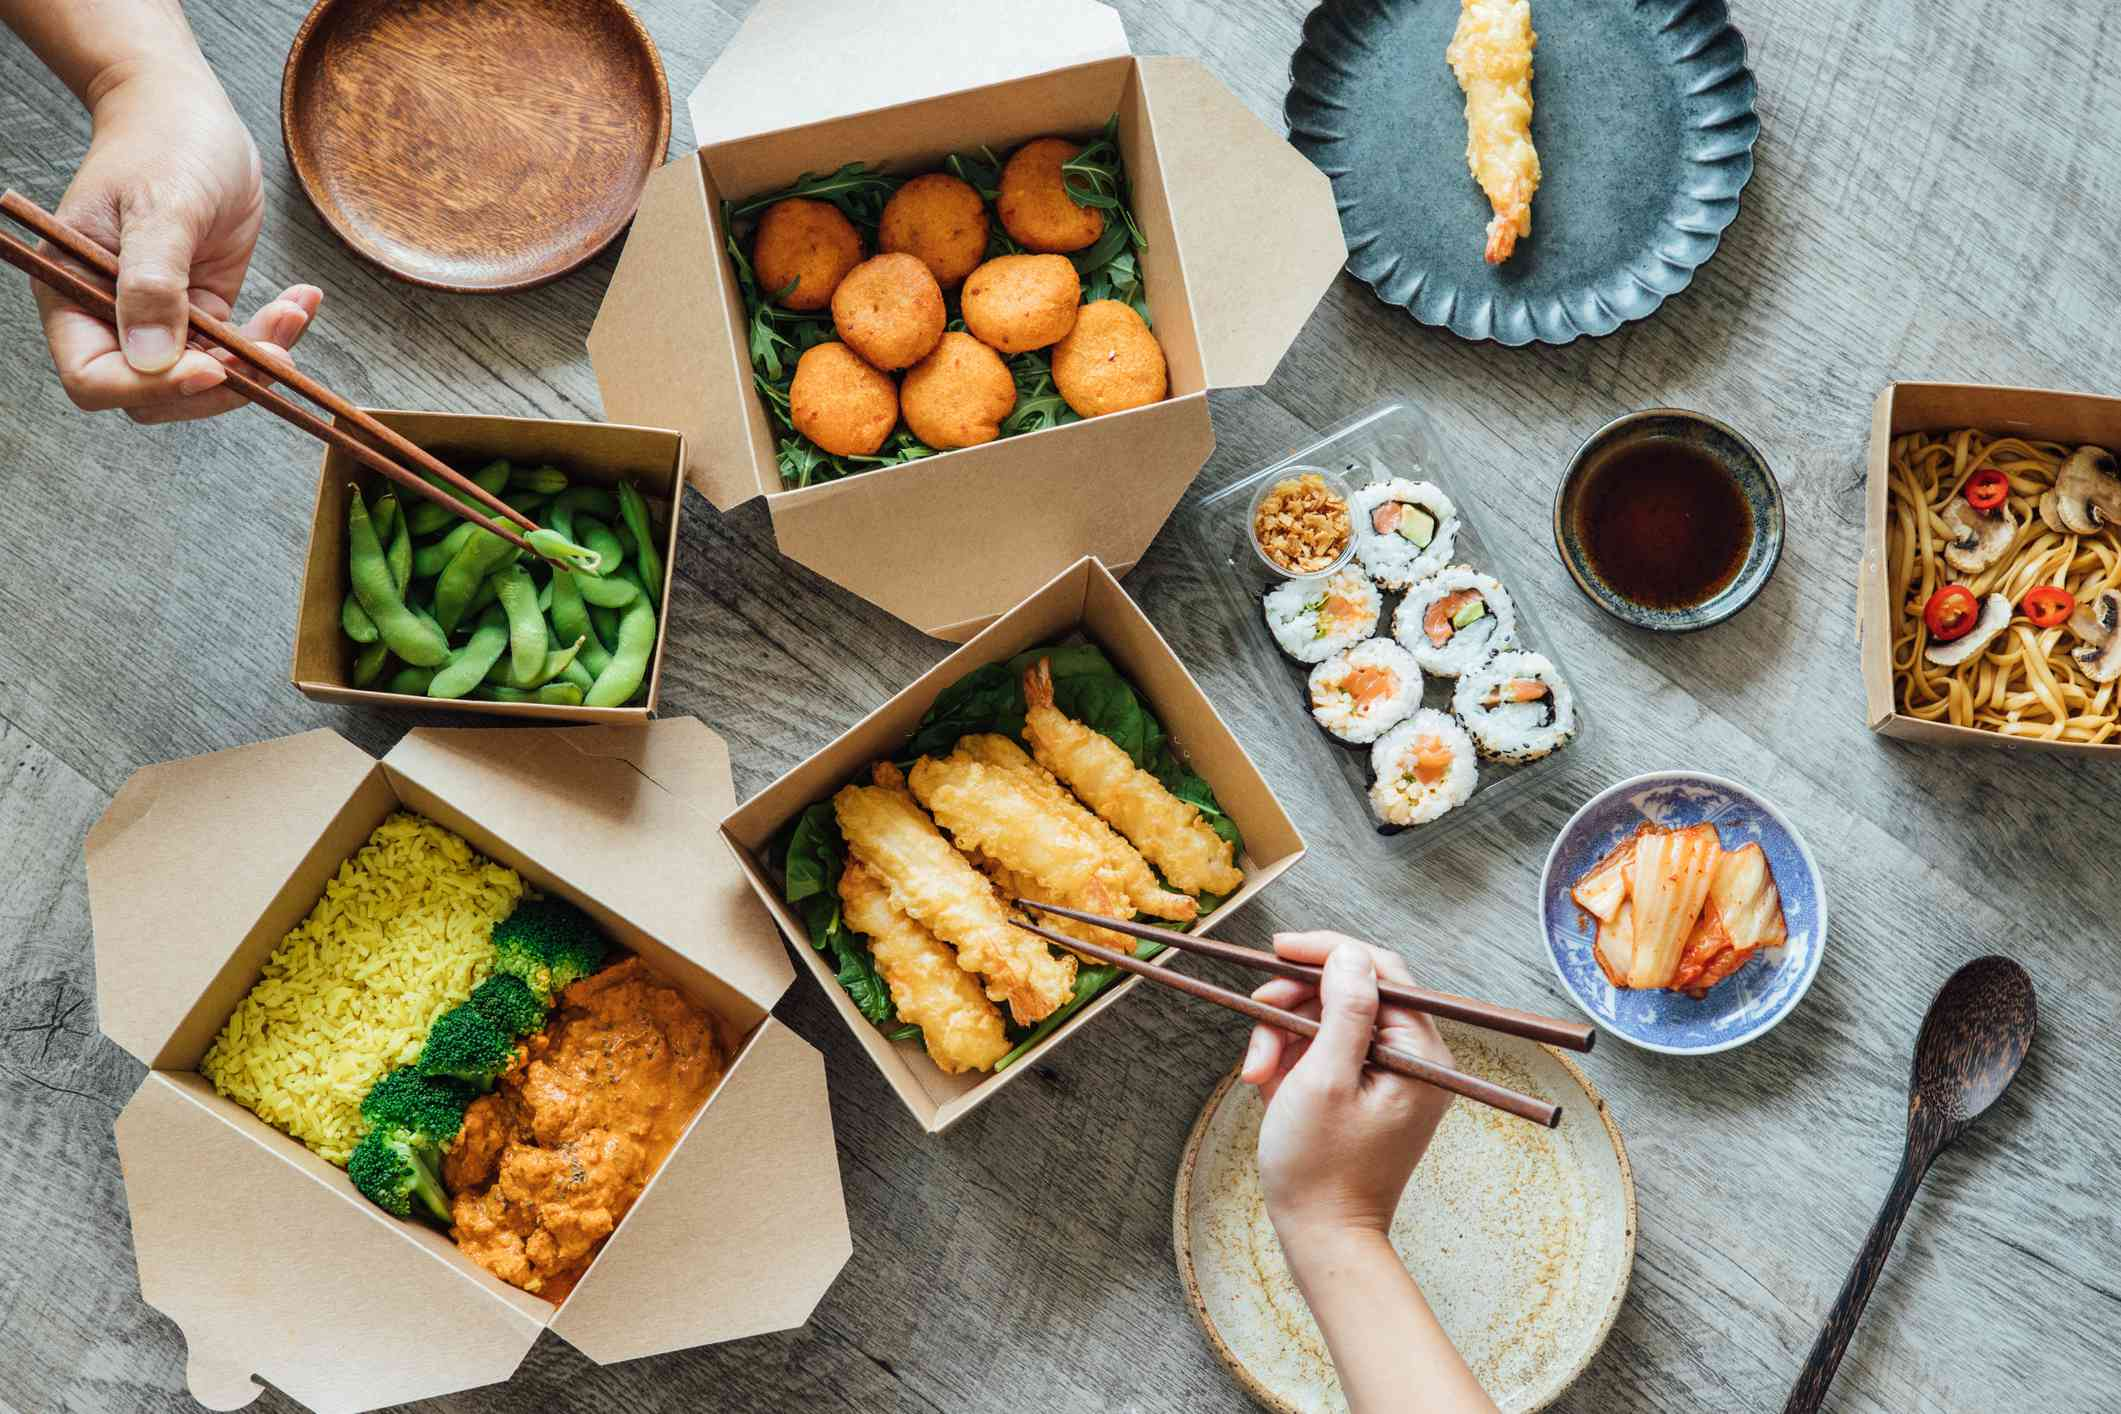 Sharing Assorted Takeaway Meal At Home